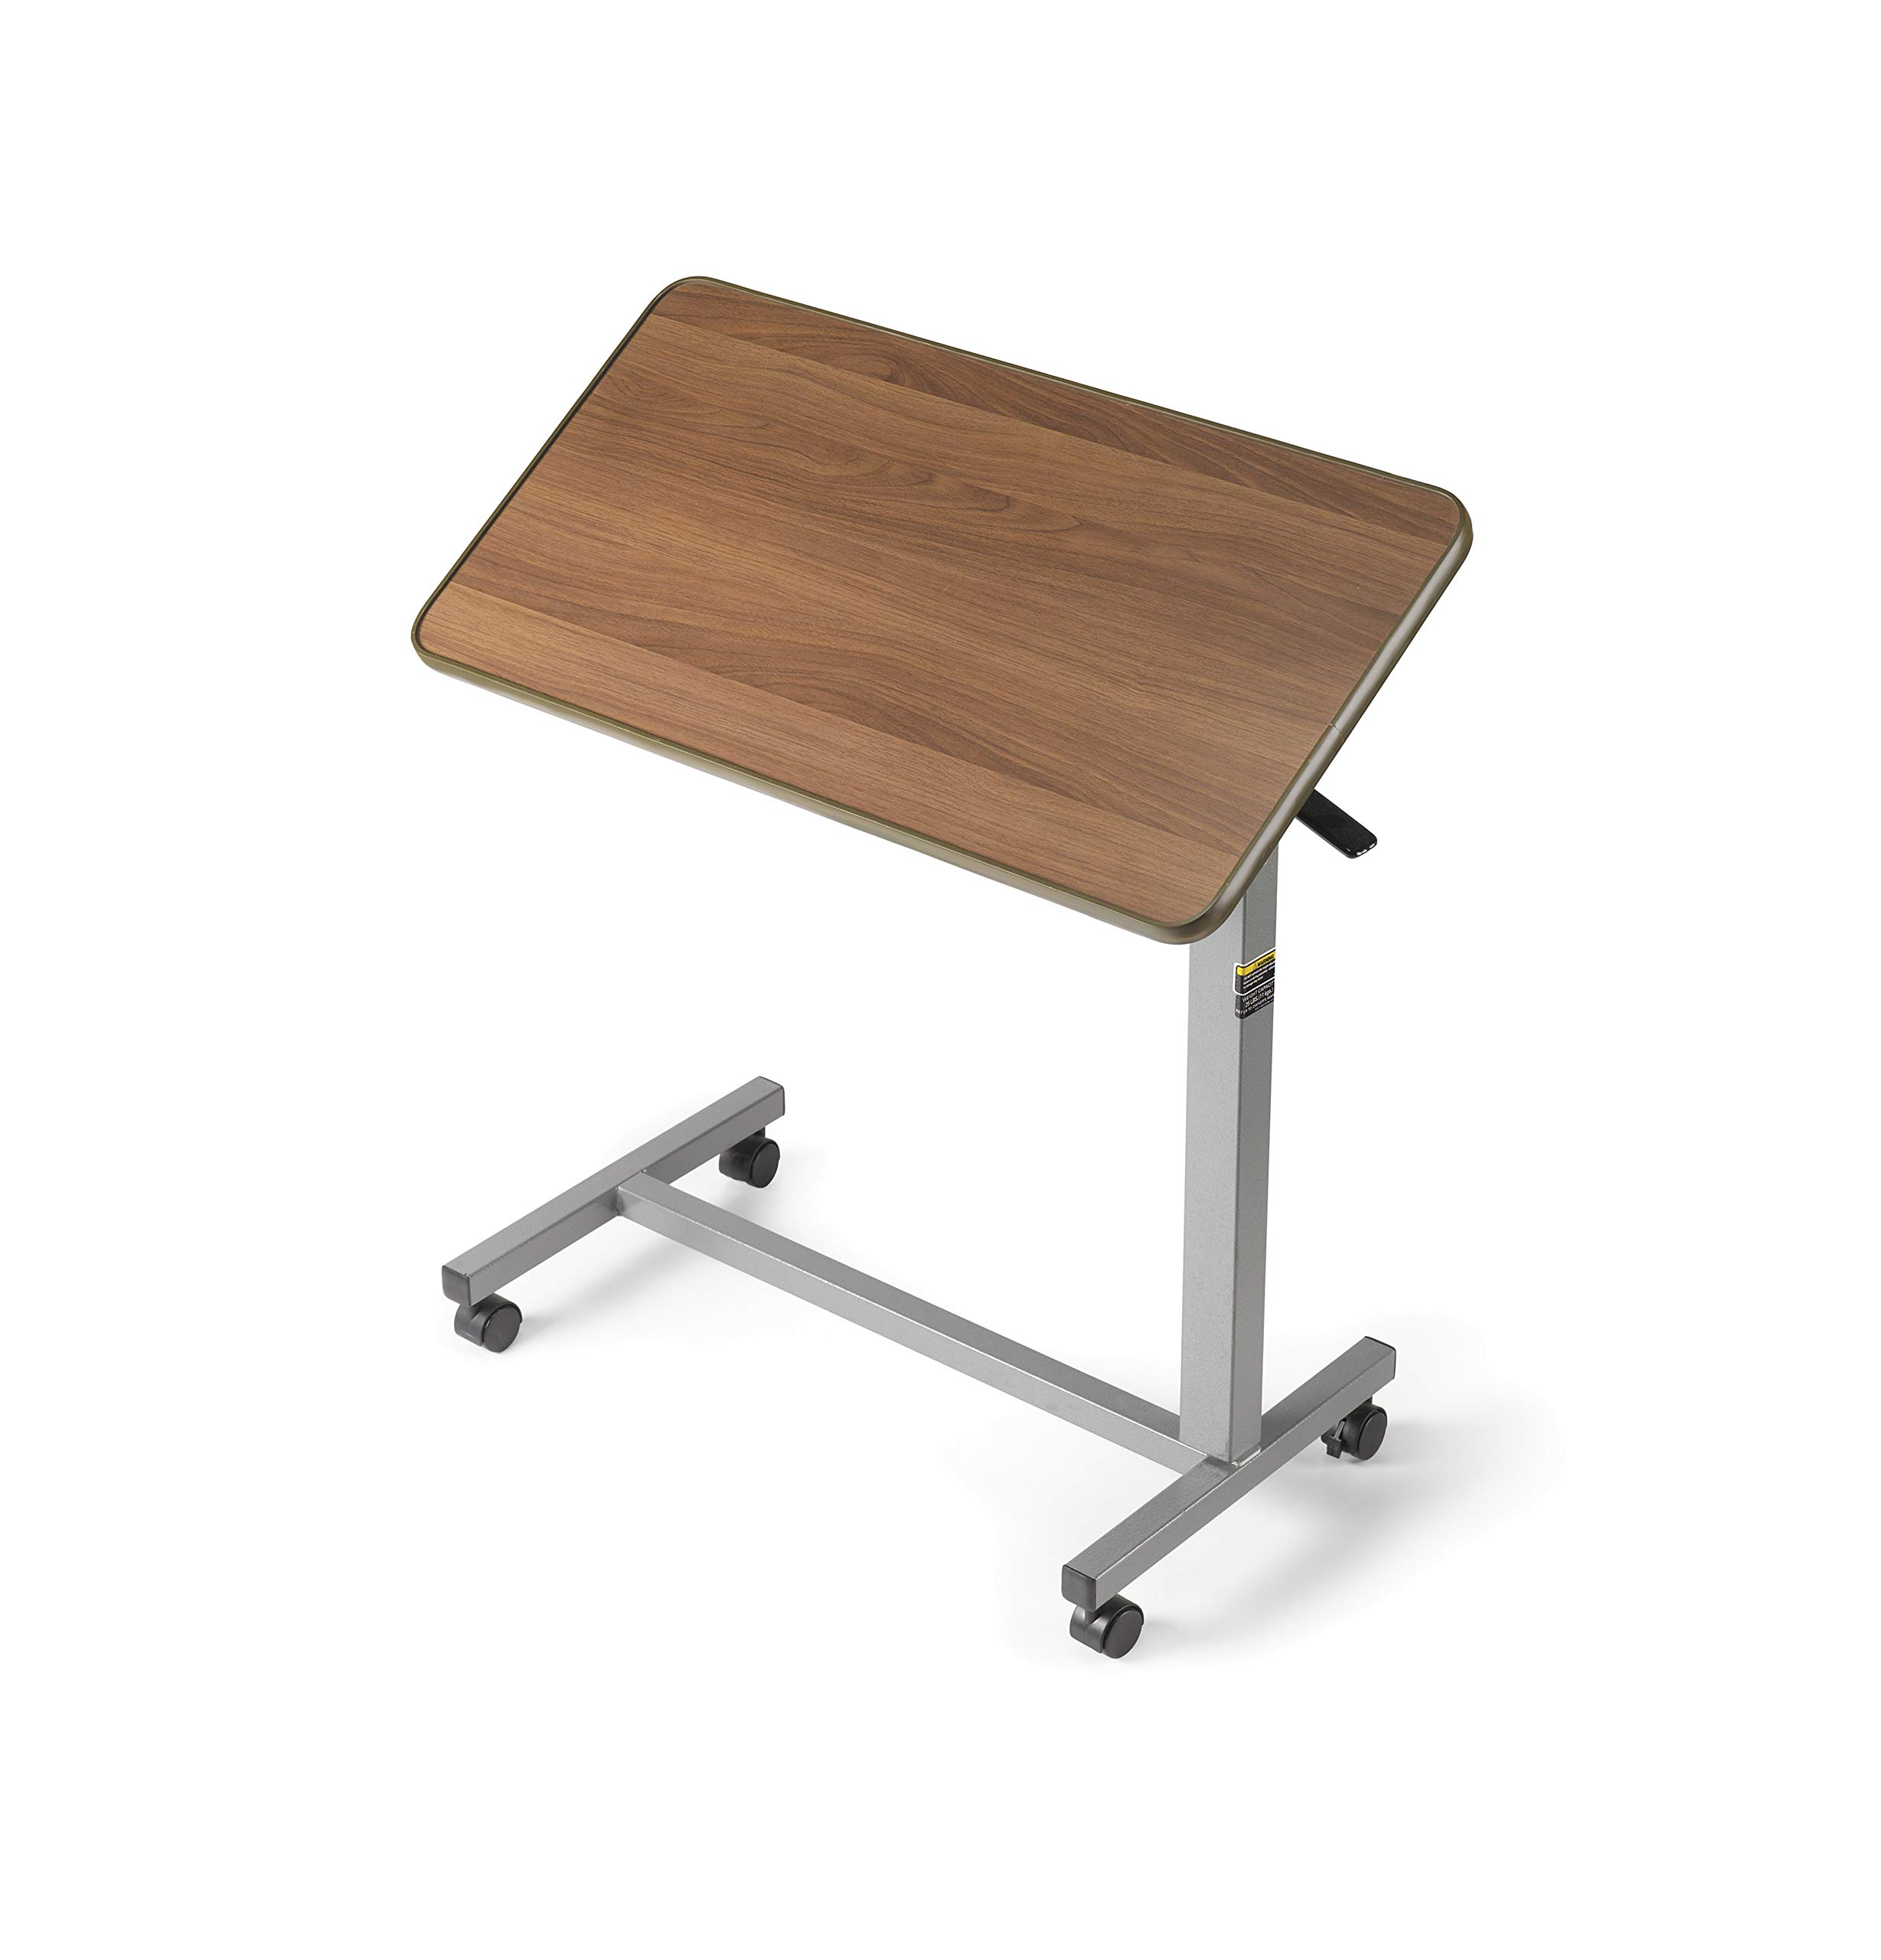 Invacare Overbed Table, with Tilt Top, Height Adjustable, 6418 by Invacare